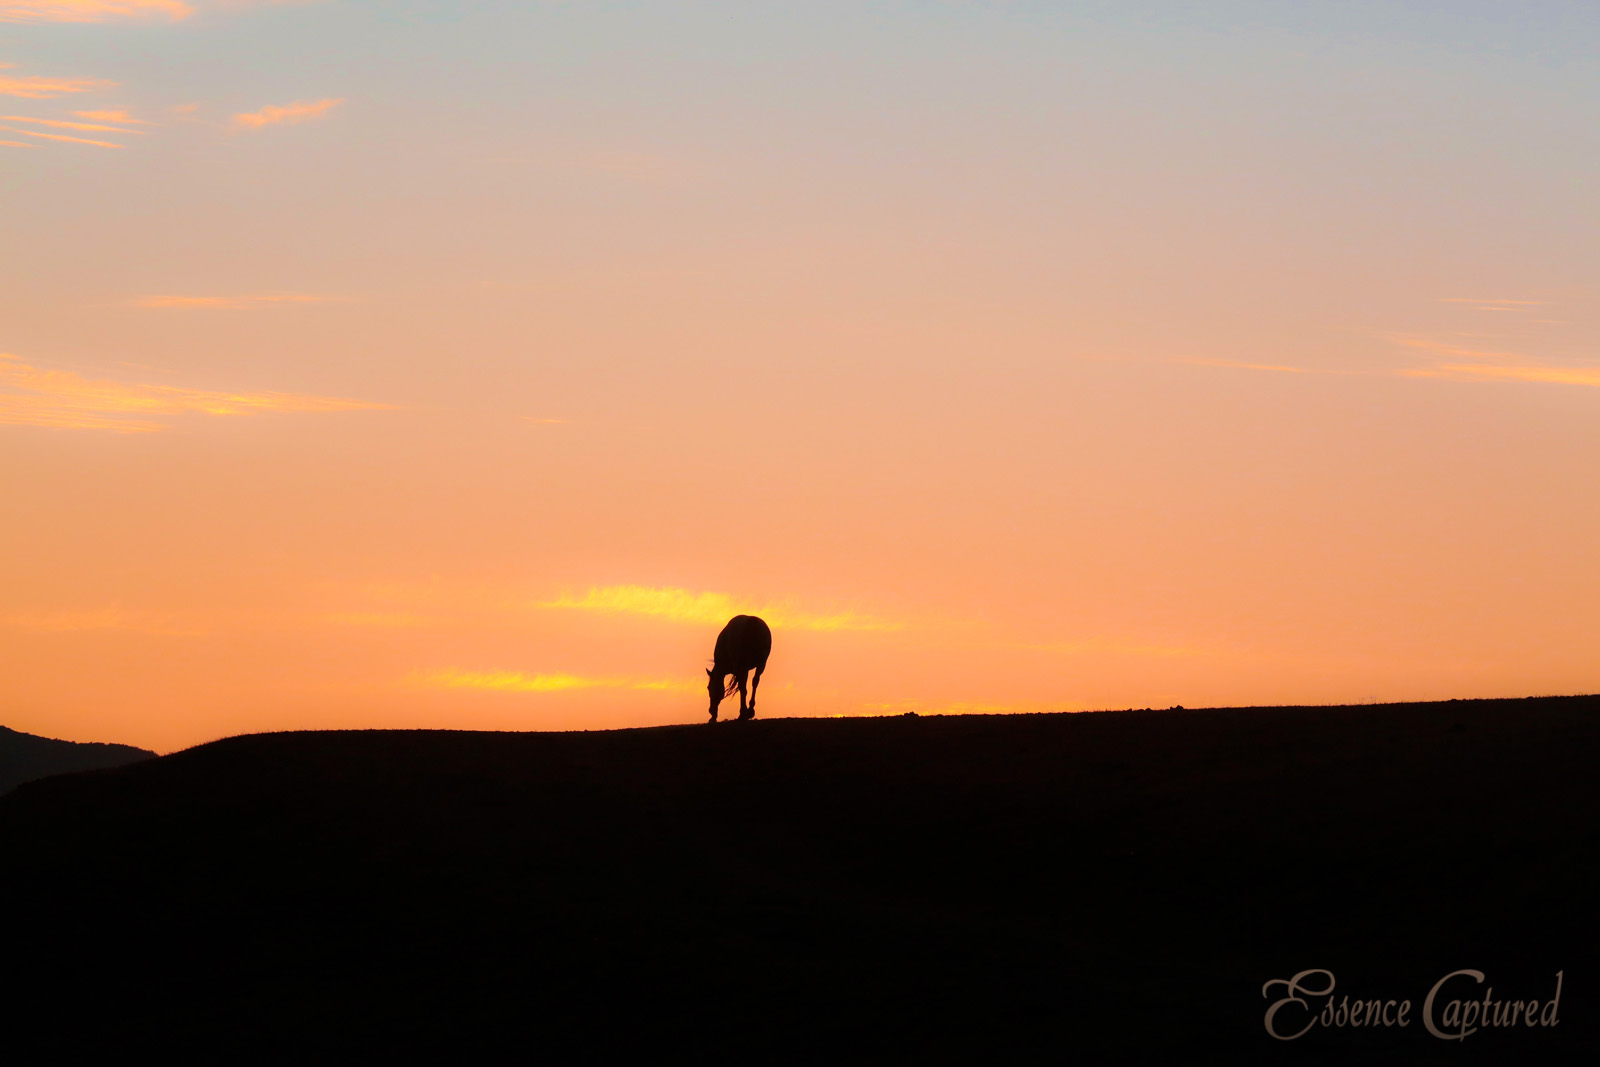 silhouette of horse grazing at sunset orange sky